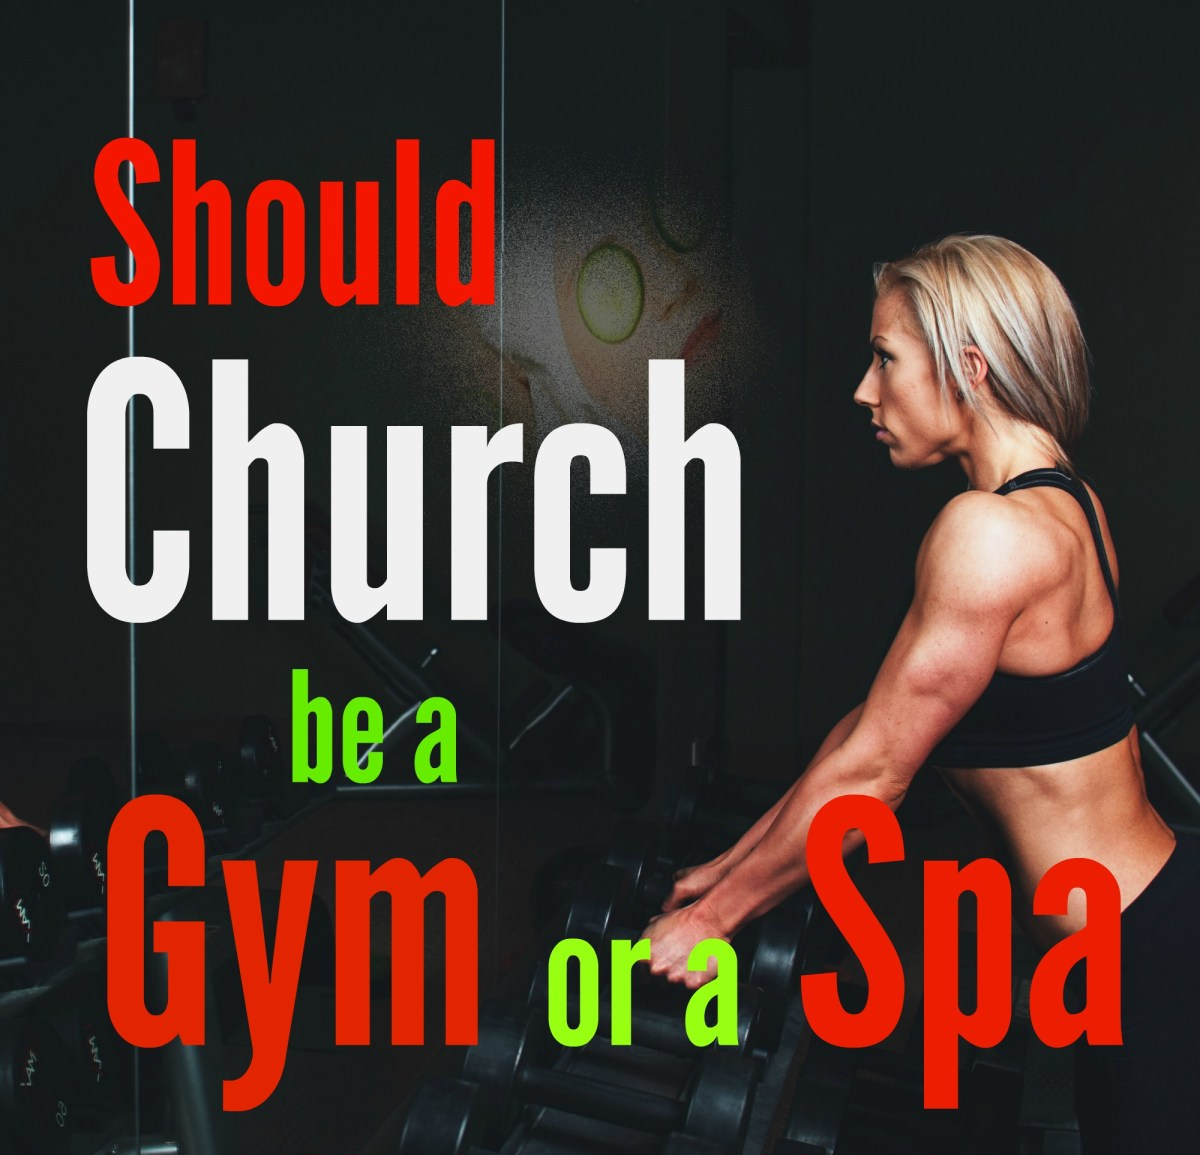 Should Church be more like a Gym or a Spa?